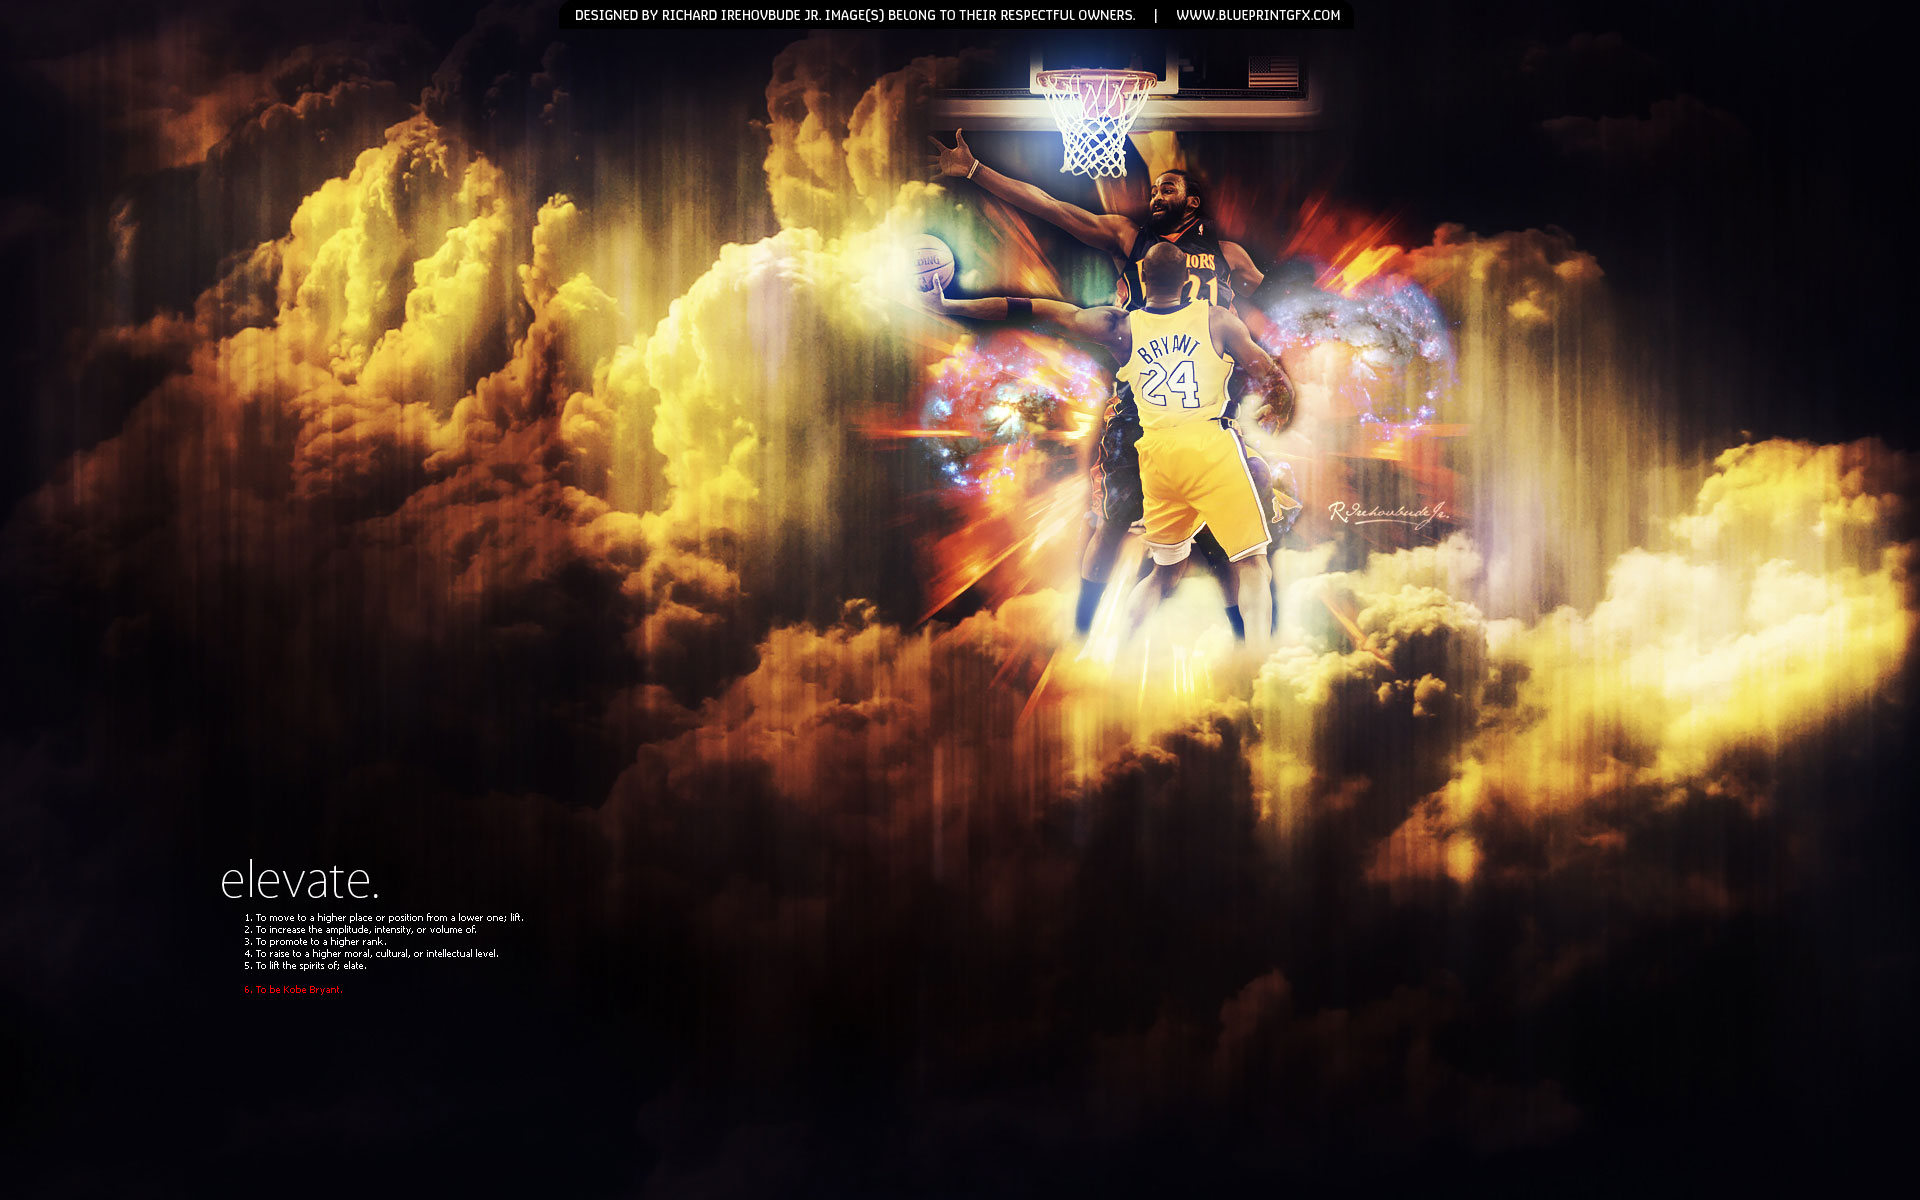 Next is widescreen wallpaper of Kobe Bryant scoring over Frenchman Ronny